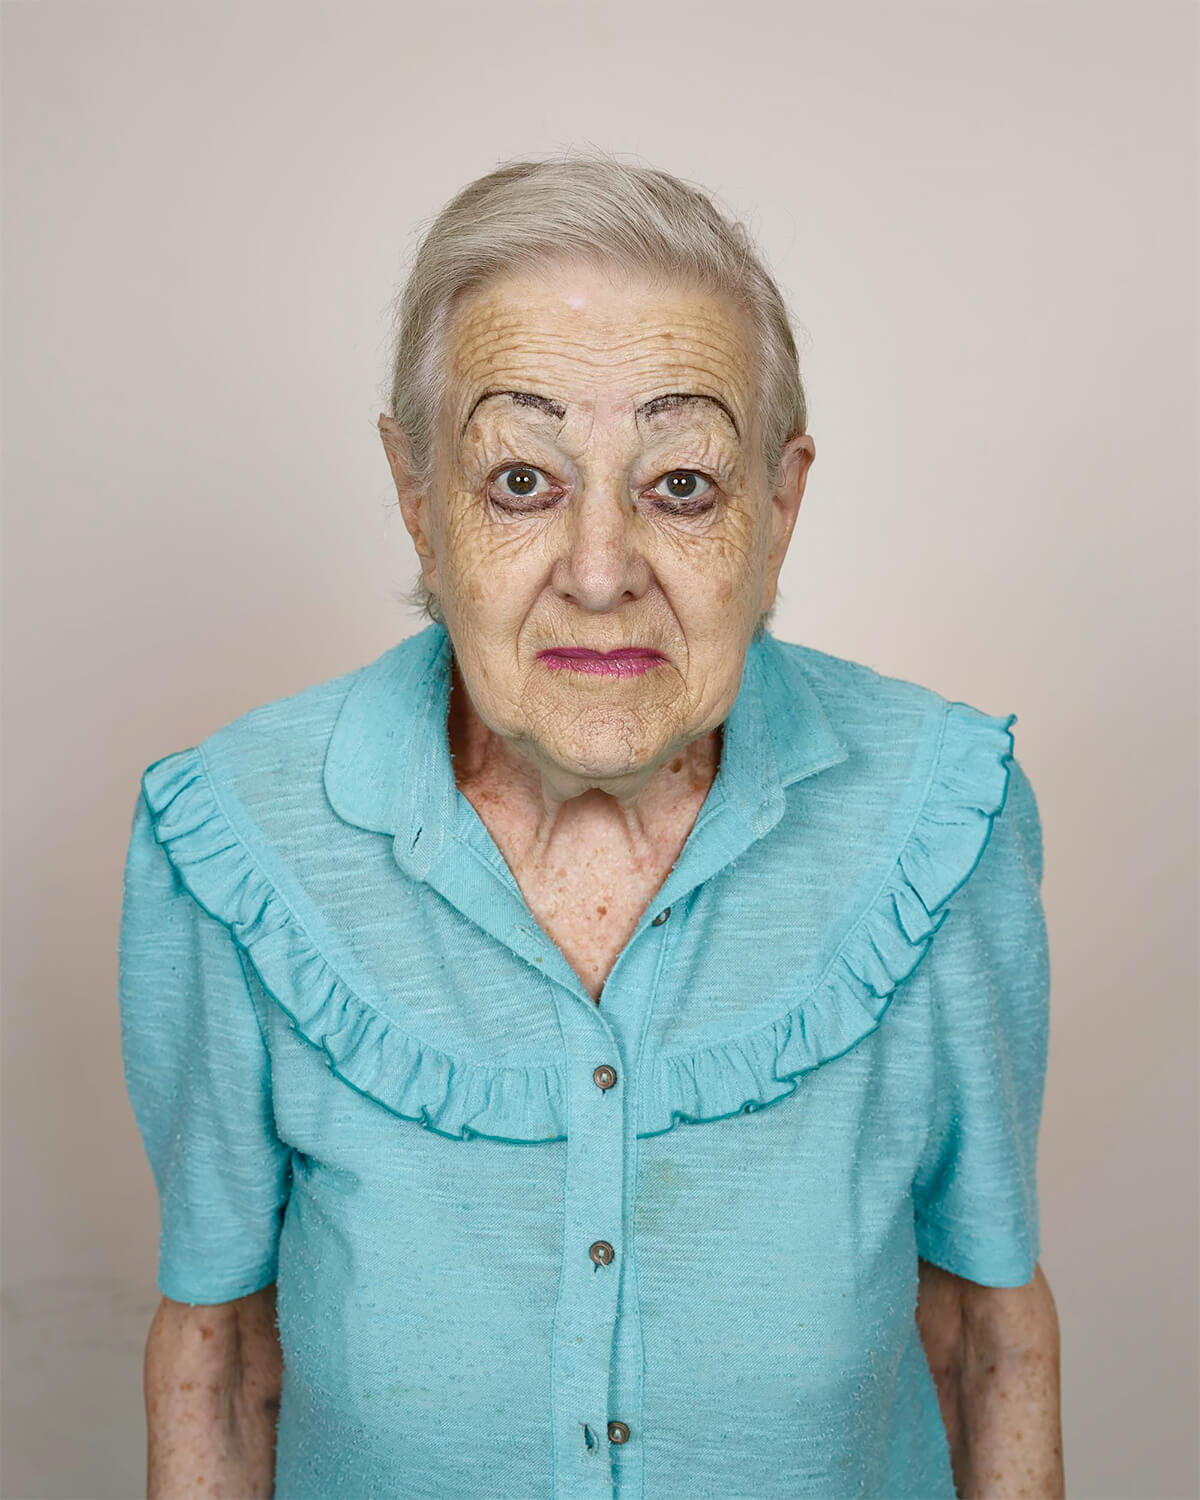 Pieter Hugo - From the series Kin, Rina Veldsman, Monte Rosa Old Age Home, Cape Town, 2013 - Digital C-Print © Pieter Hugo, Courtesy Yossi Milo Gallery